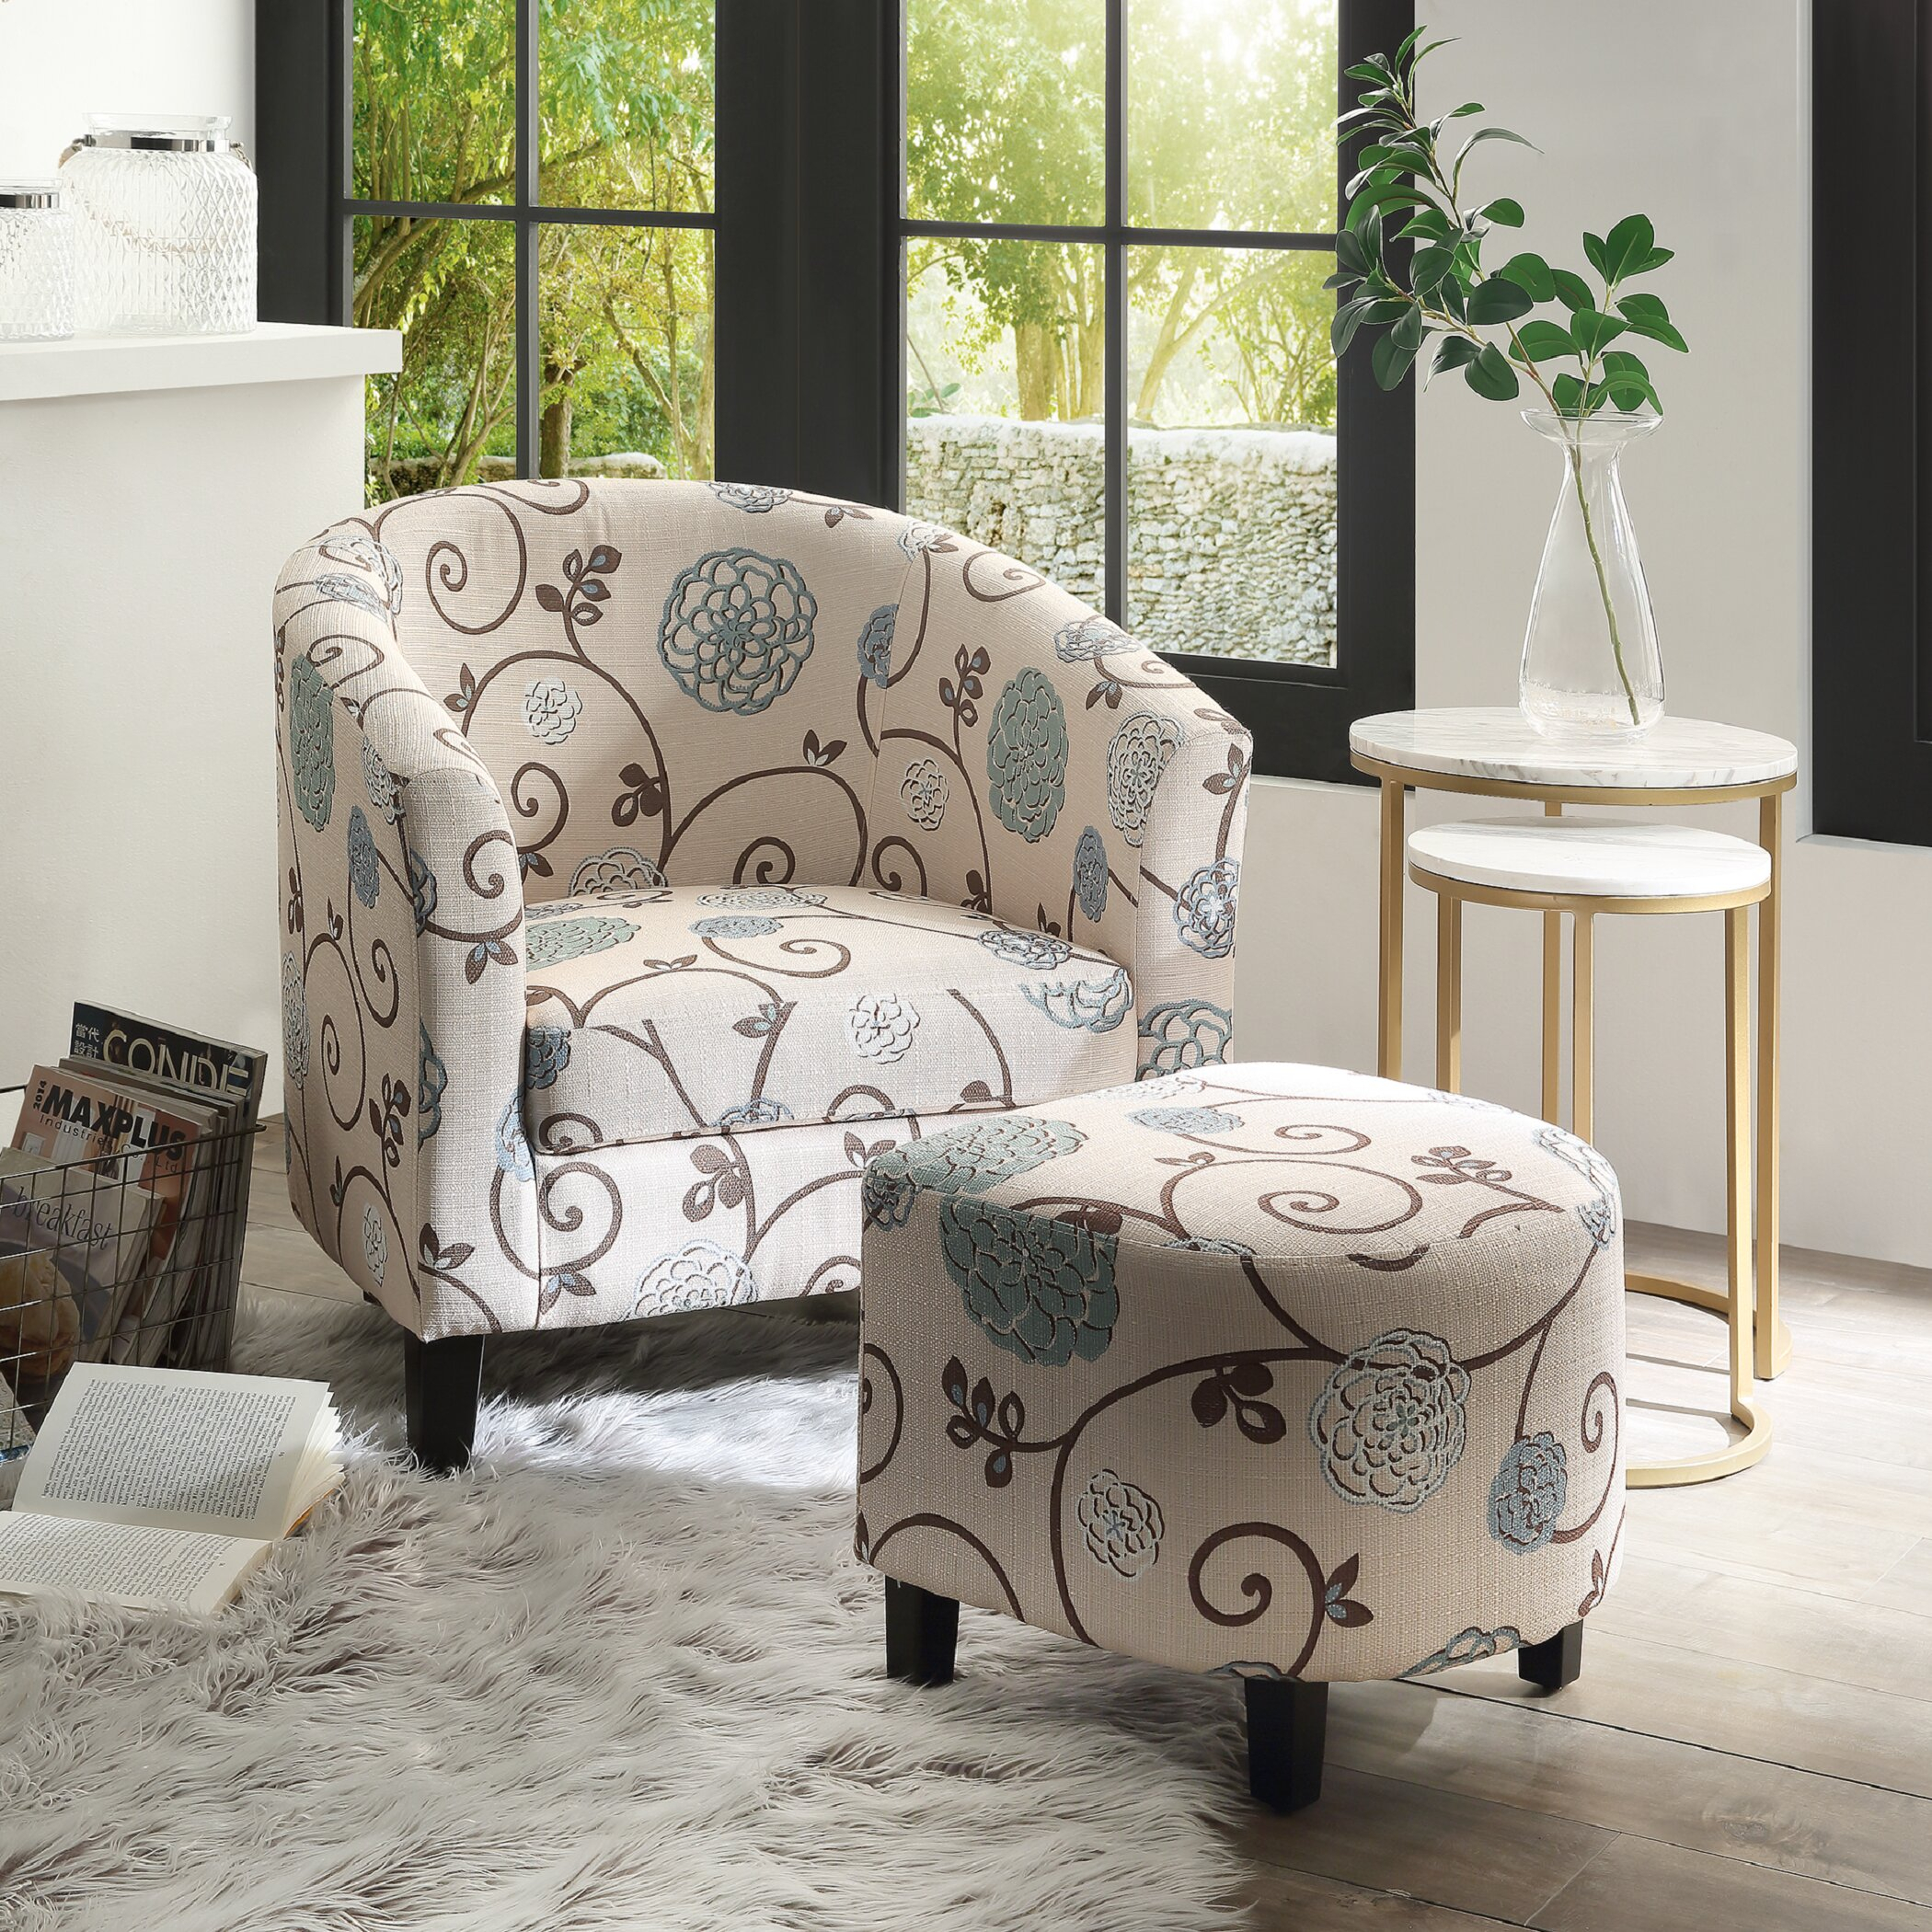 Barrel Accent Chairs On Sale | Wayfair Within Jazouli Linen Barrel Chairs And Ottoman (View 8 of 15)